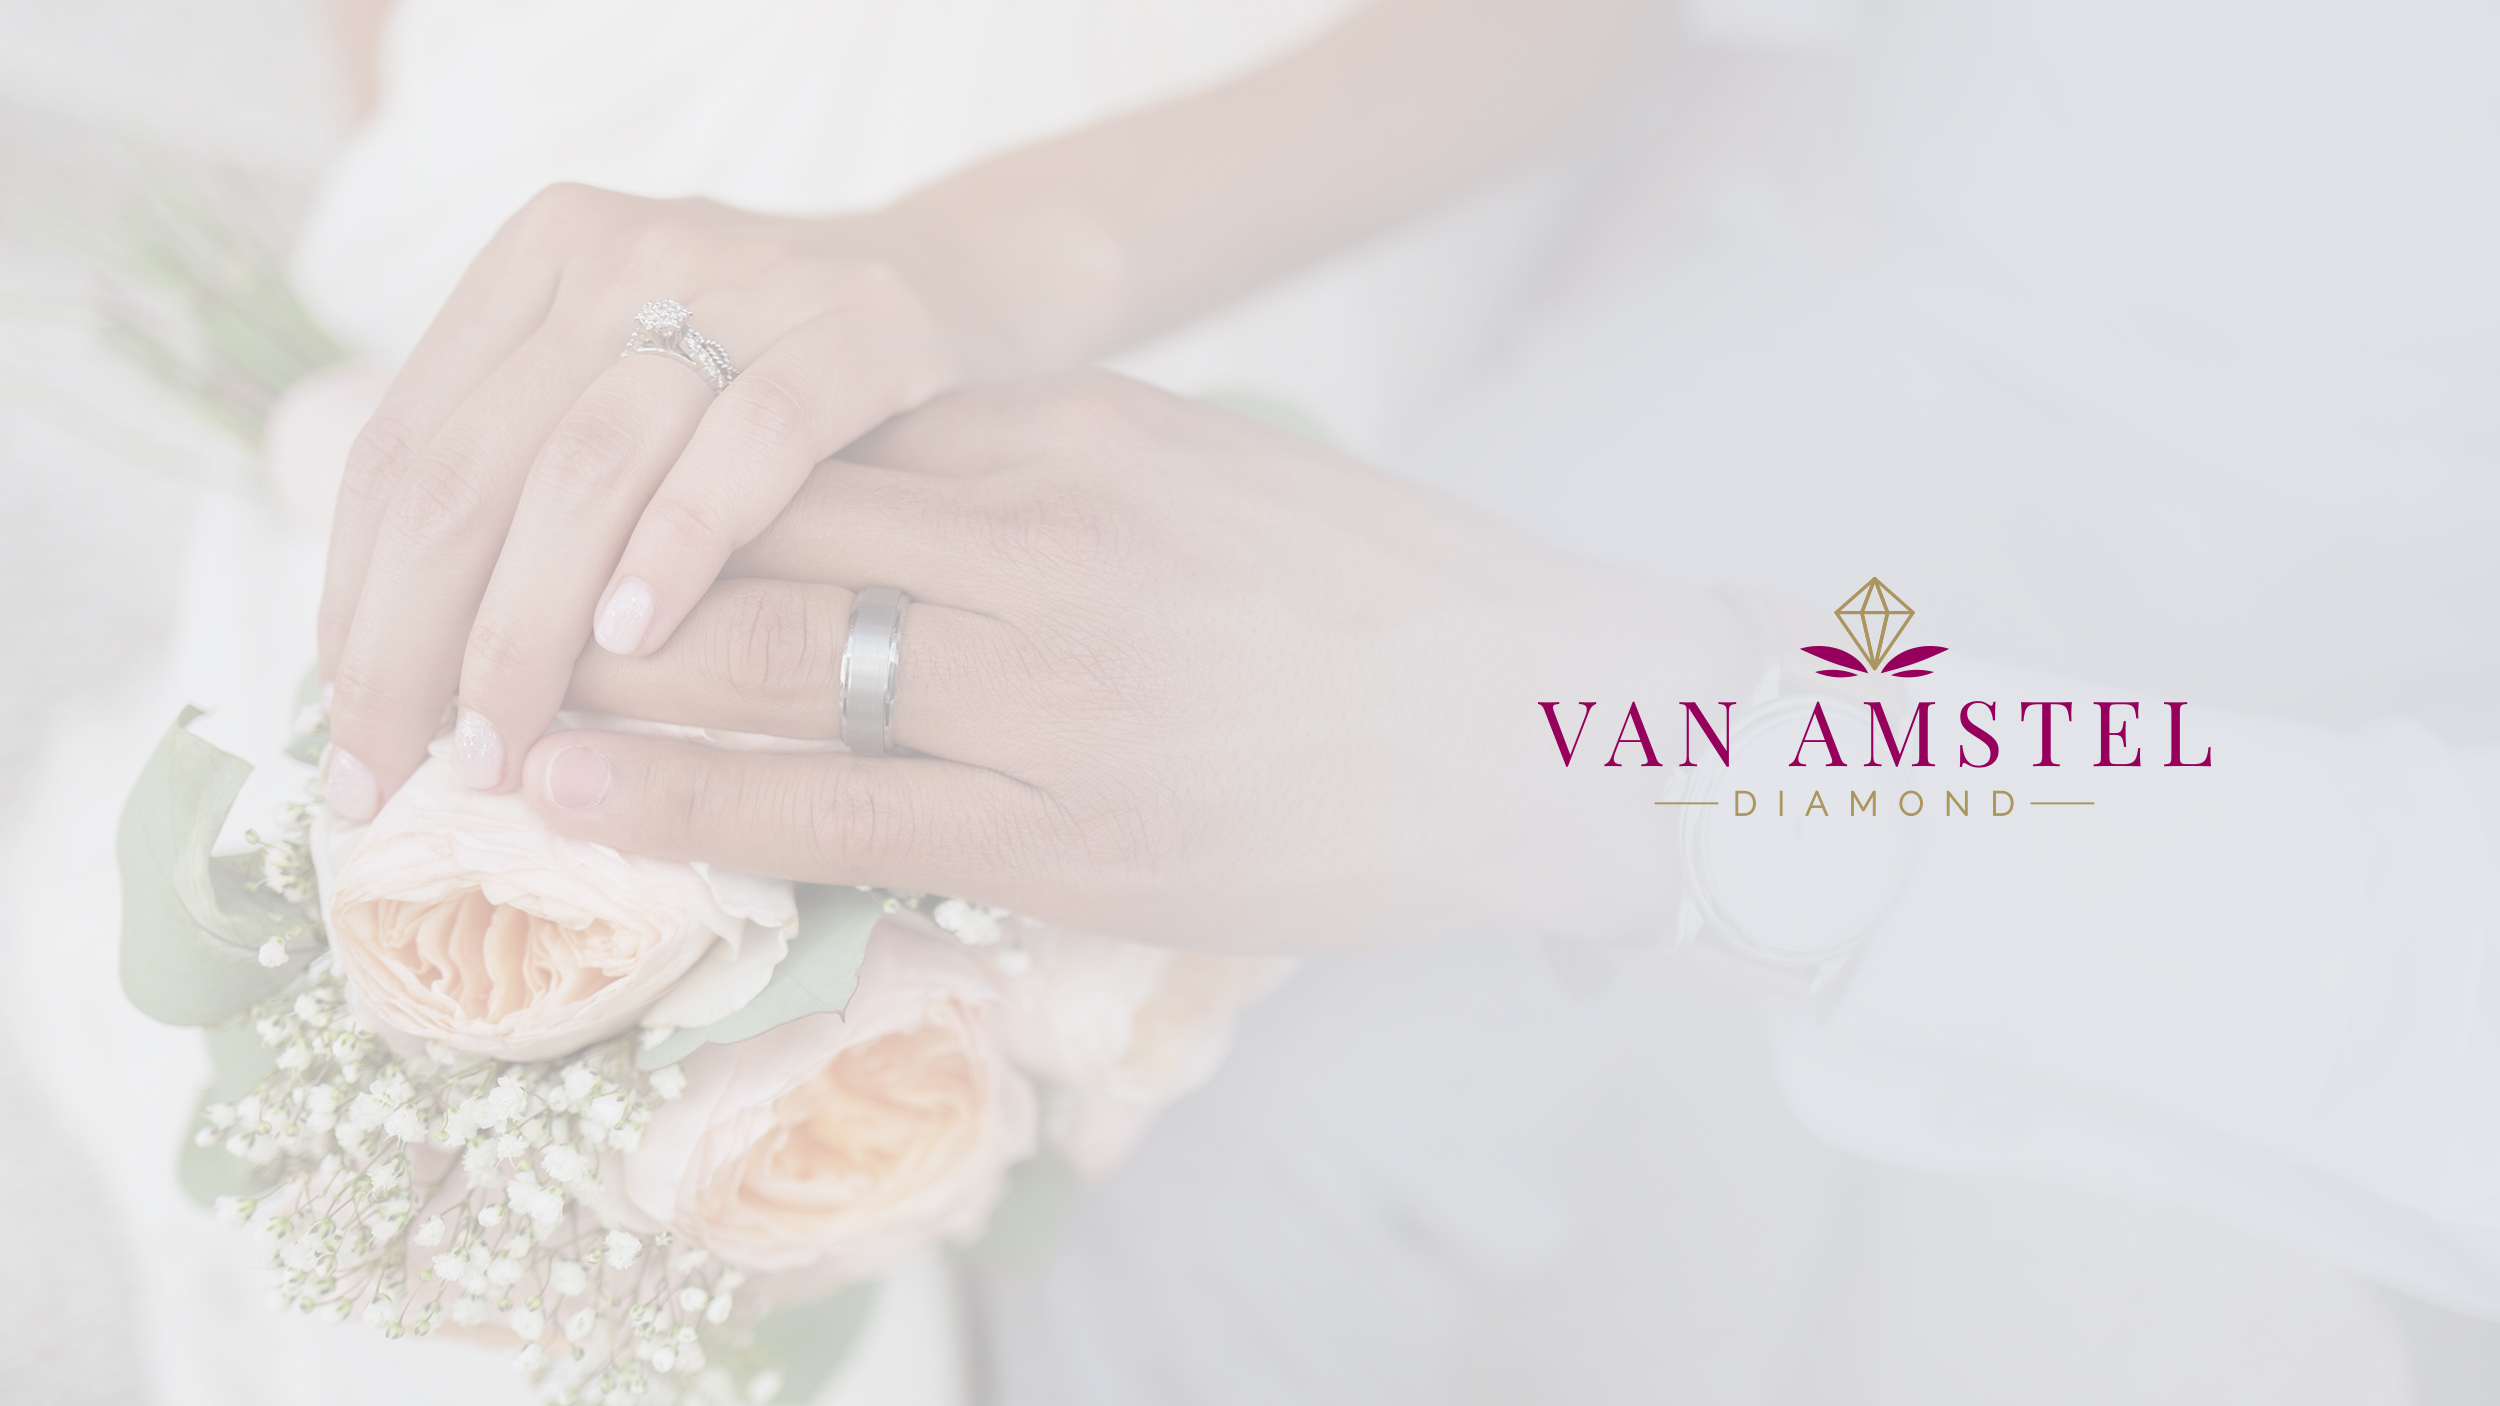 Van Amstel Logo Gentle Present Hands Lovely Design